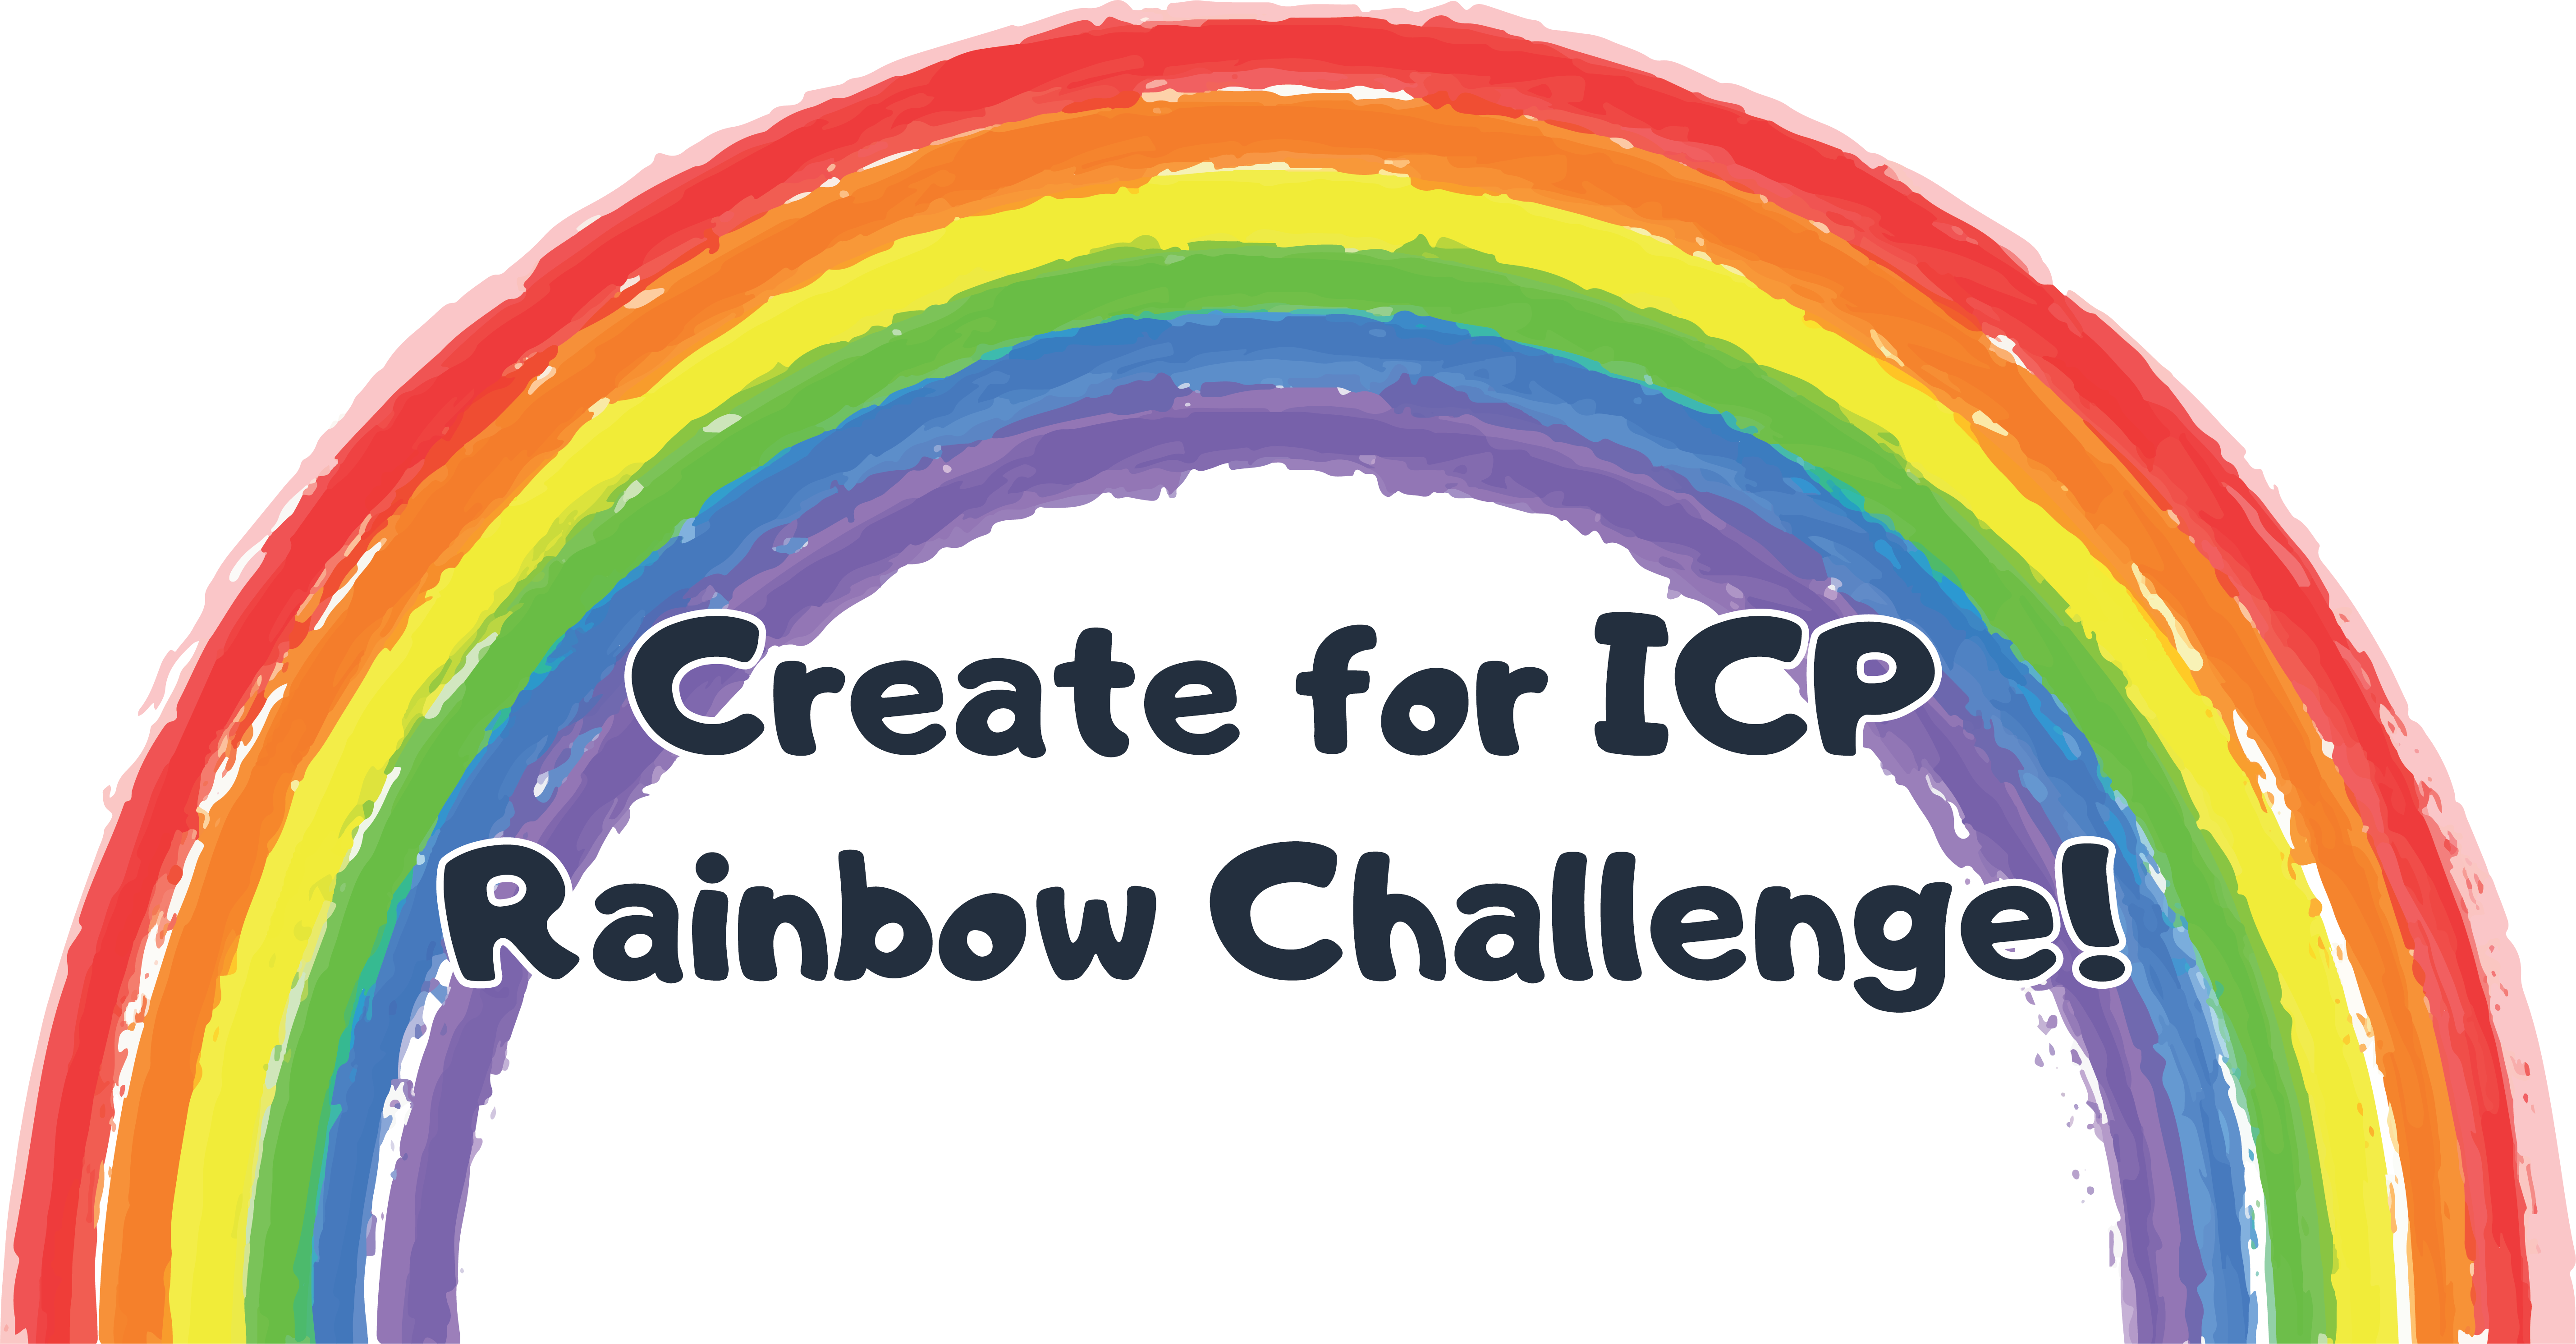 Create for ICP Rainbow Challenge